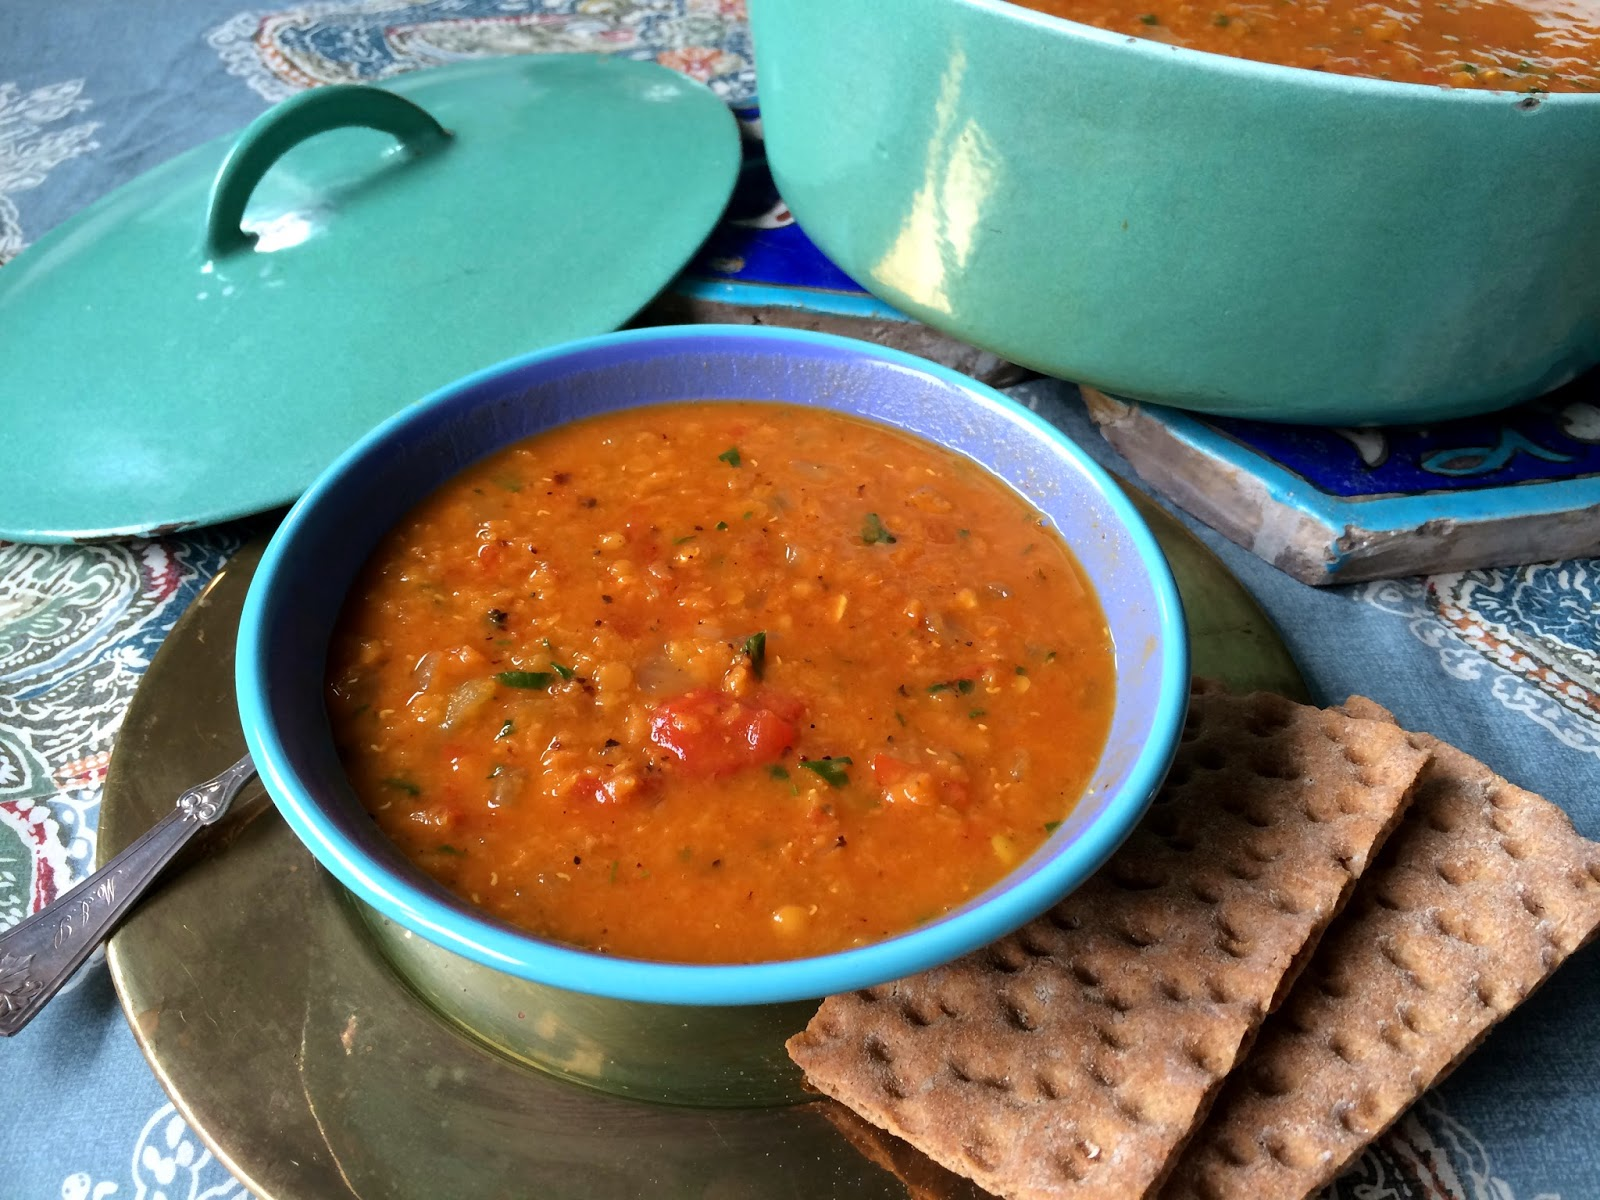 Andrew Schloss | Cookbook Author: Slow Baked Moroccan Red Lentil Soup